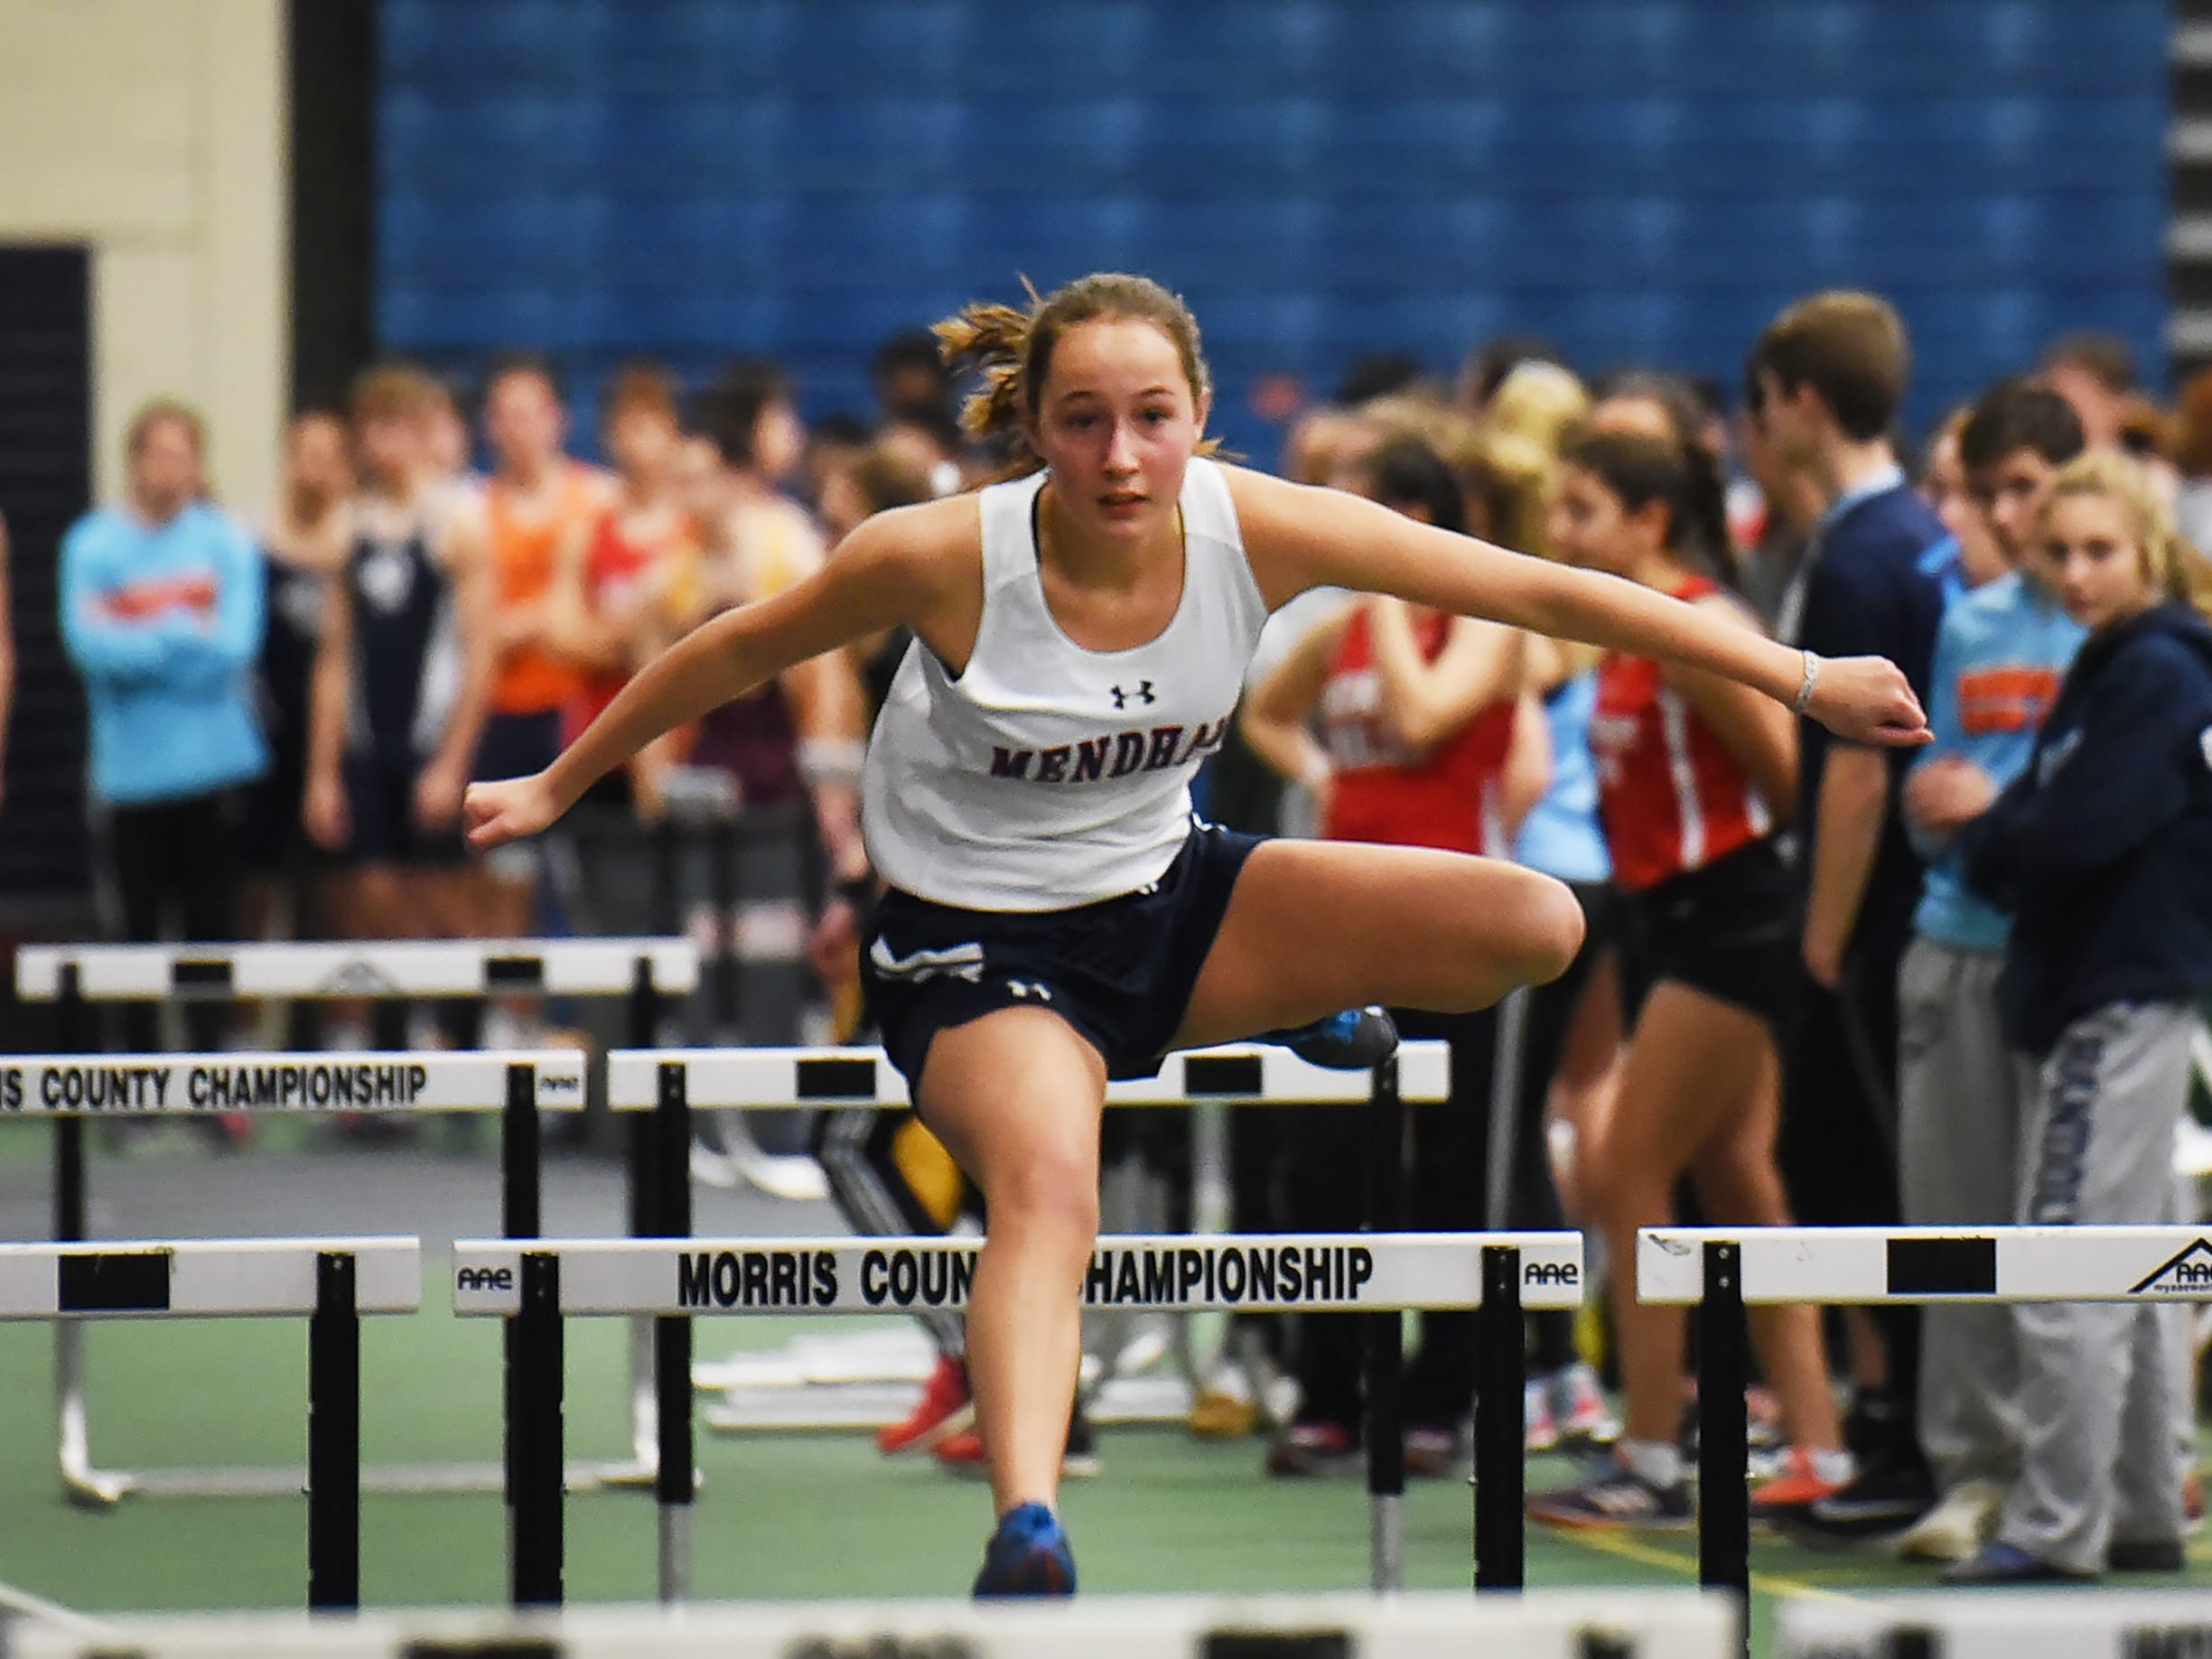 Silje Debets of Mendham clears a hurdle during Morris County Relays at Drew University in Madison on 01/09/19.